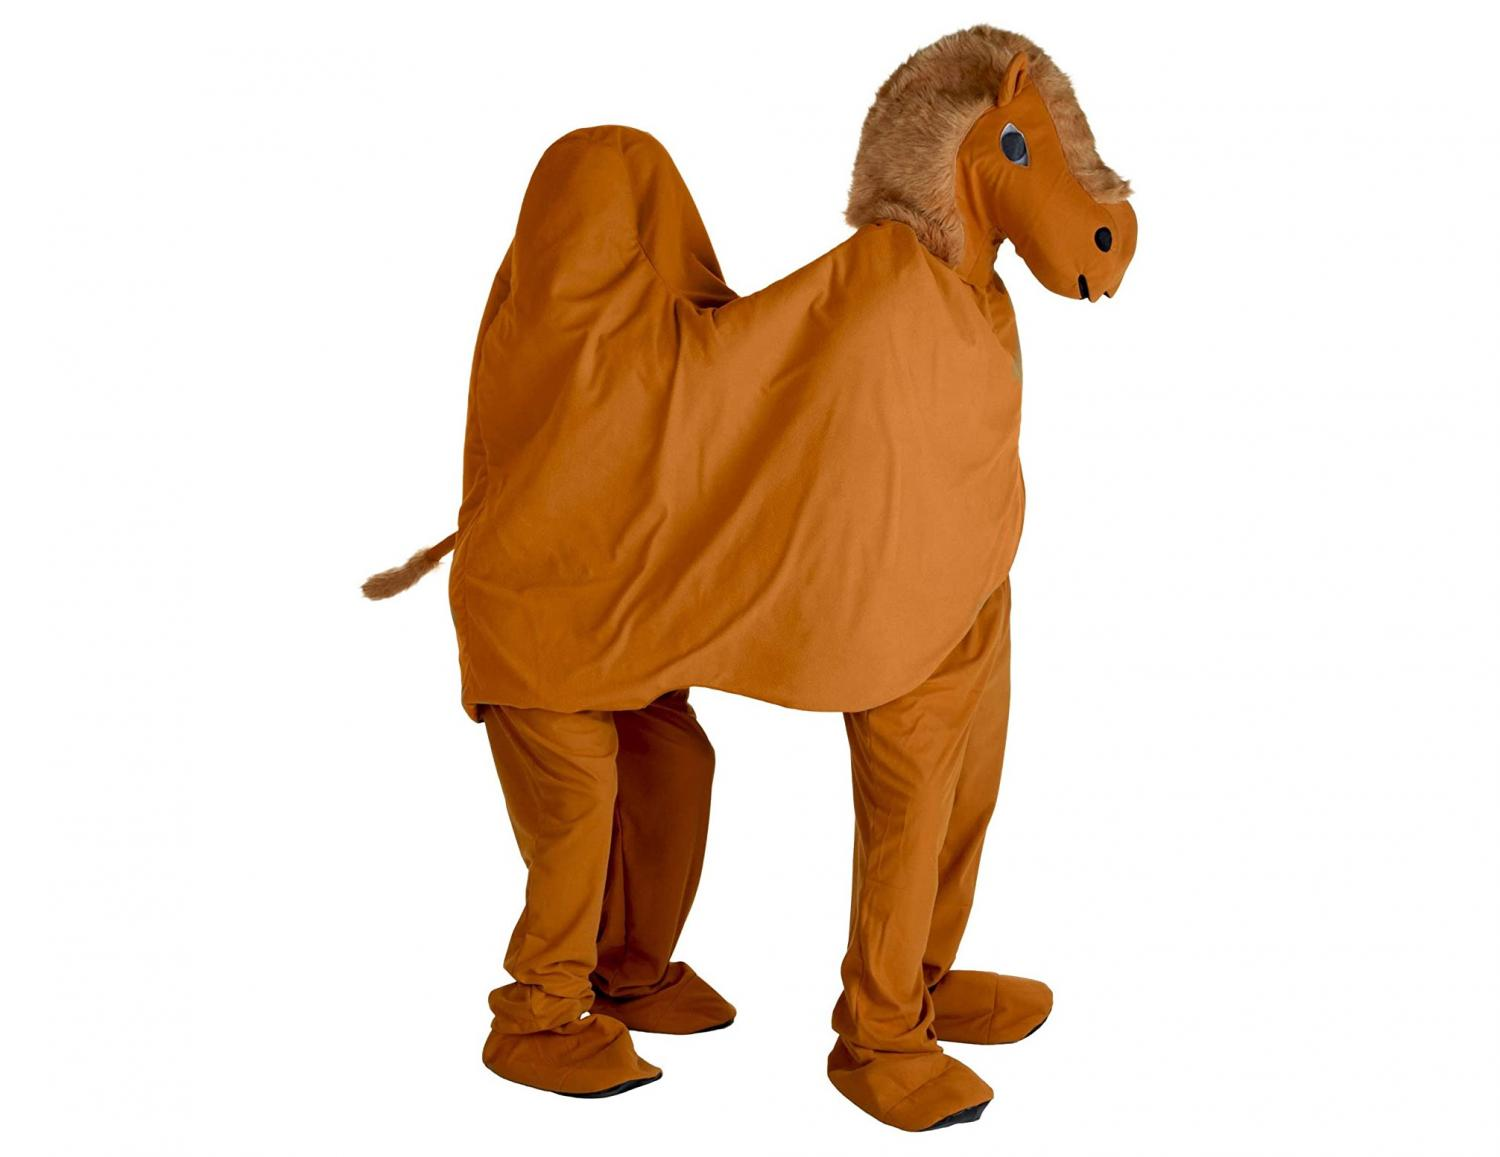 Two-Person Camel Costume That Makes Each Person A Hump On The Camel's Back